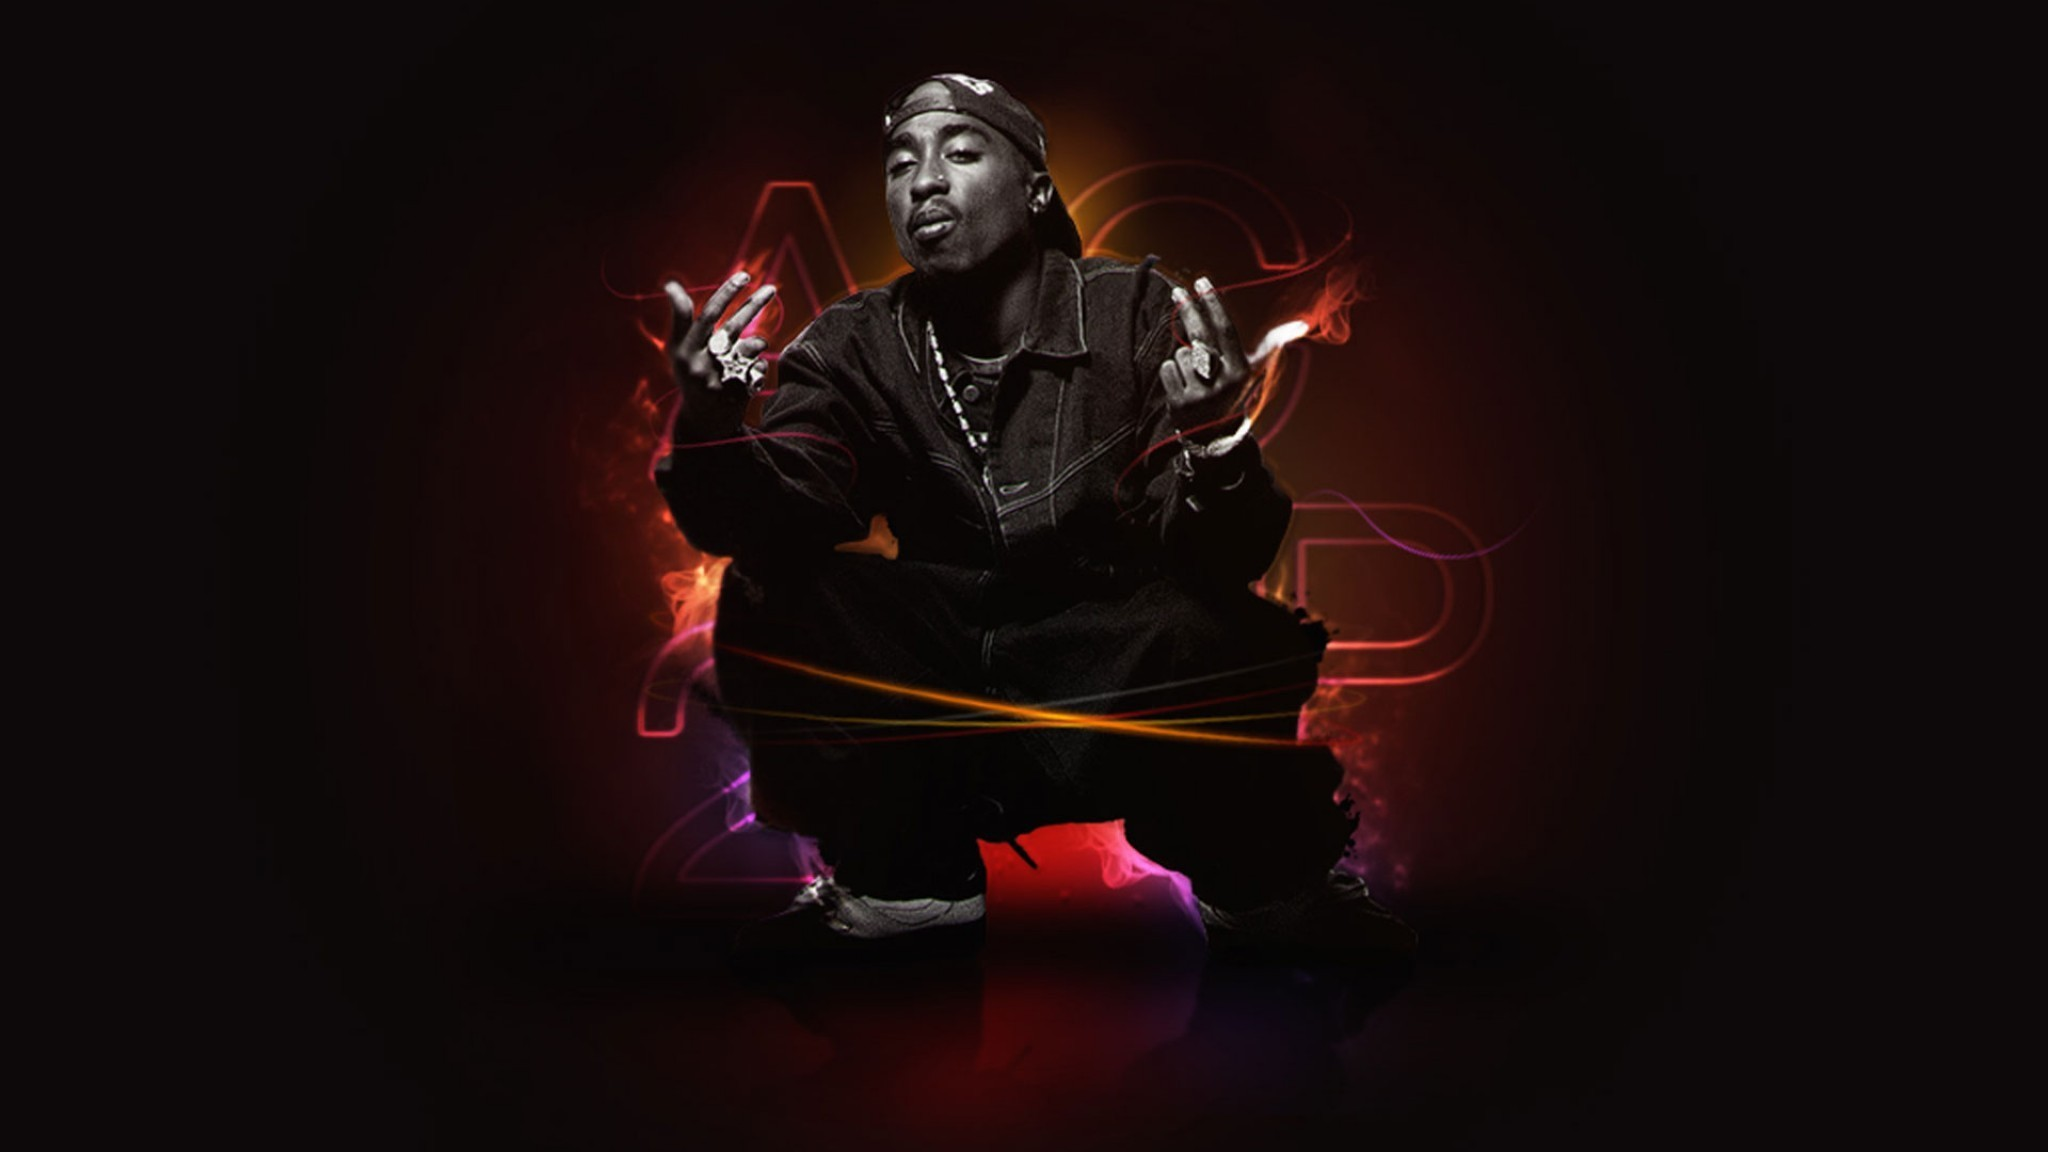 Lil Wayne 3d Wallpaper Tupac And Biggie Wallpaper 183 ①